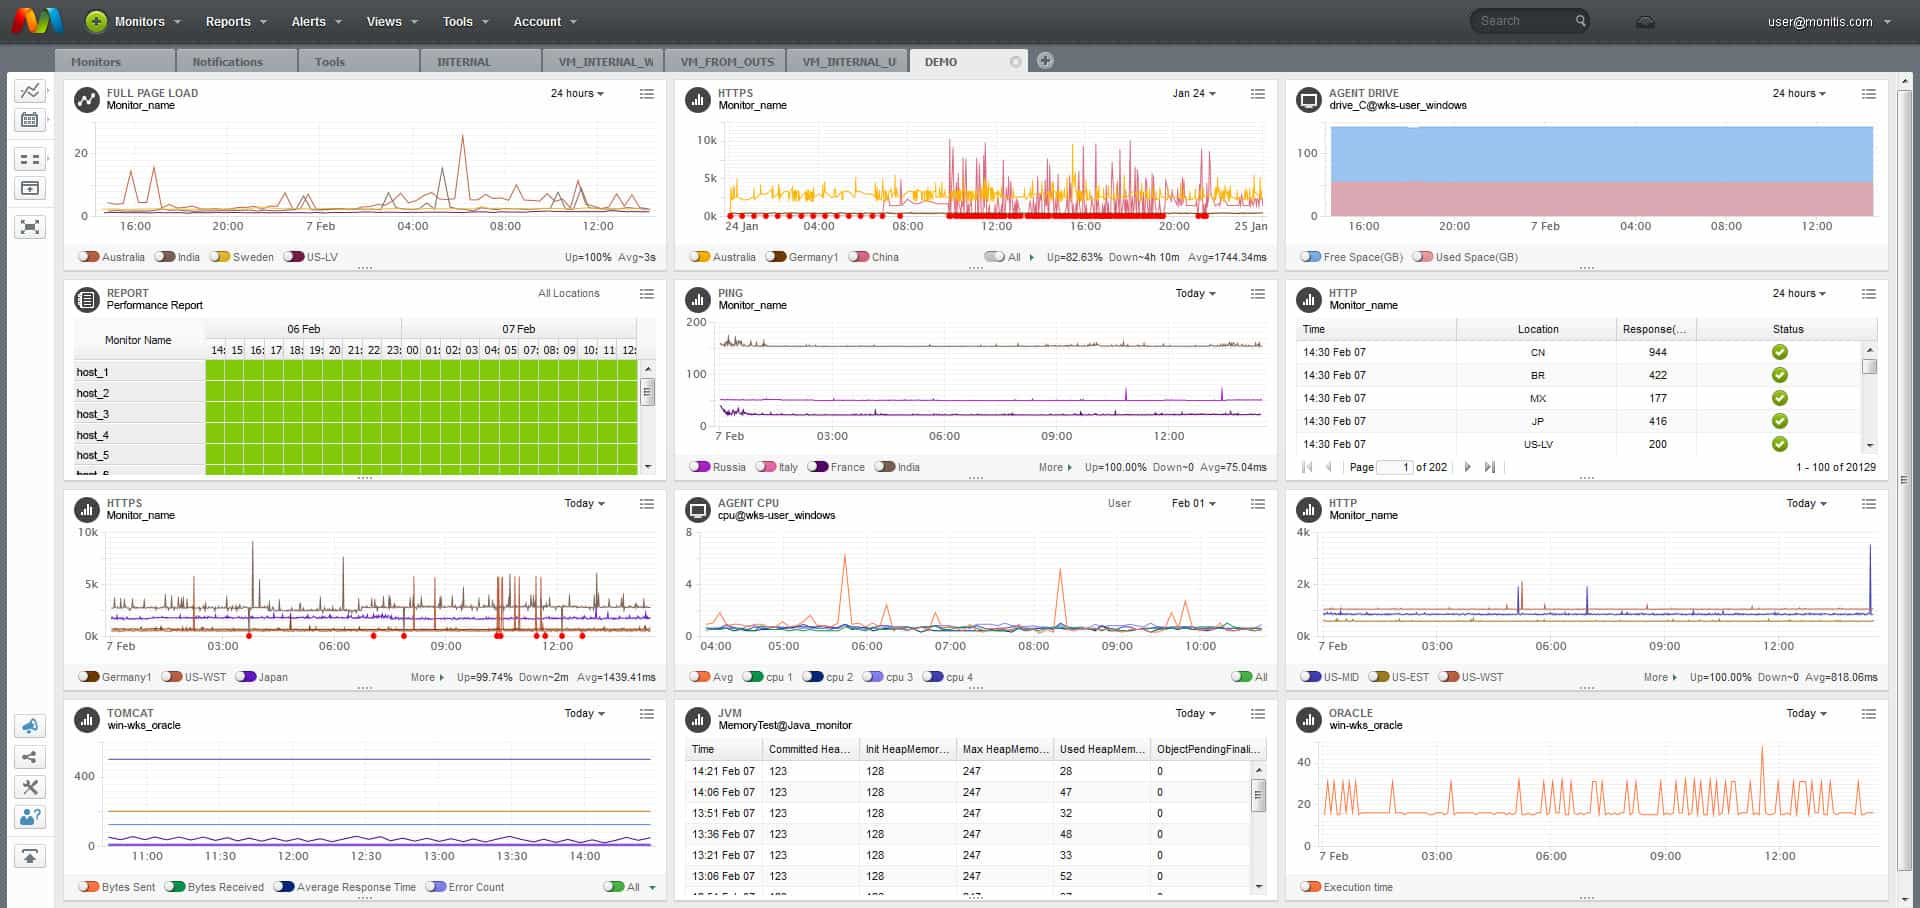 11 Best Hardware Monitoring Tools and Software - Comparitech